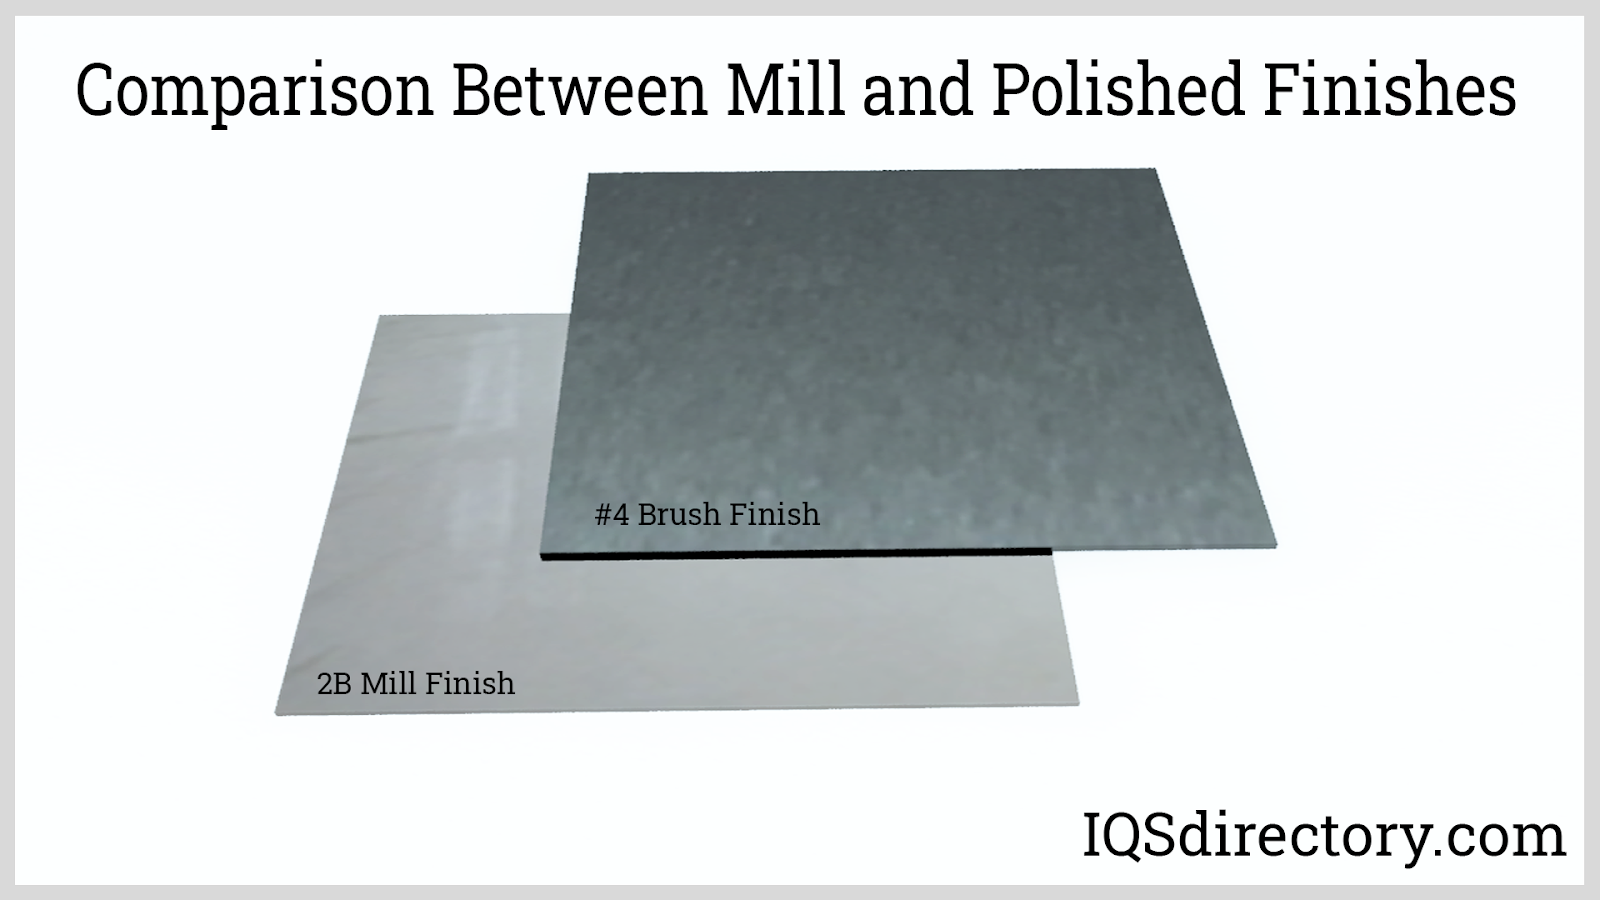 Comparison Between Mill and Polished Finishes